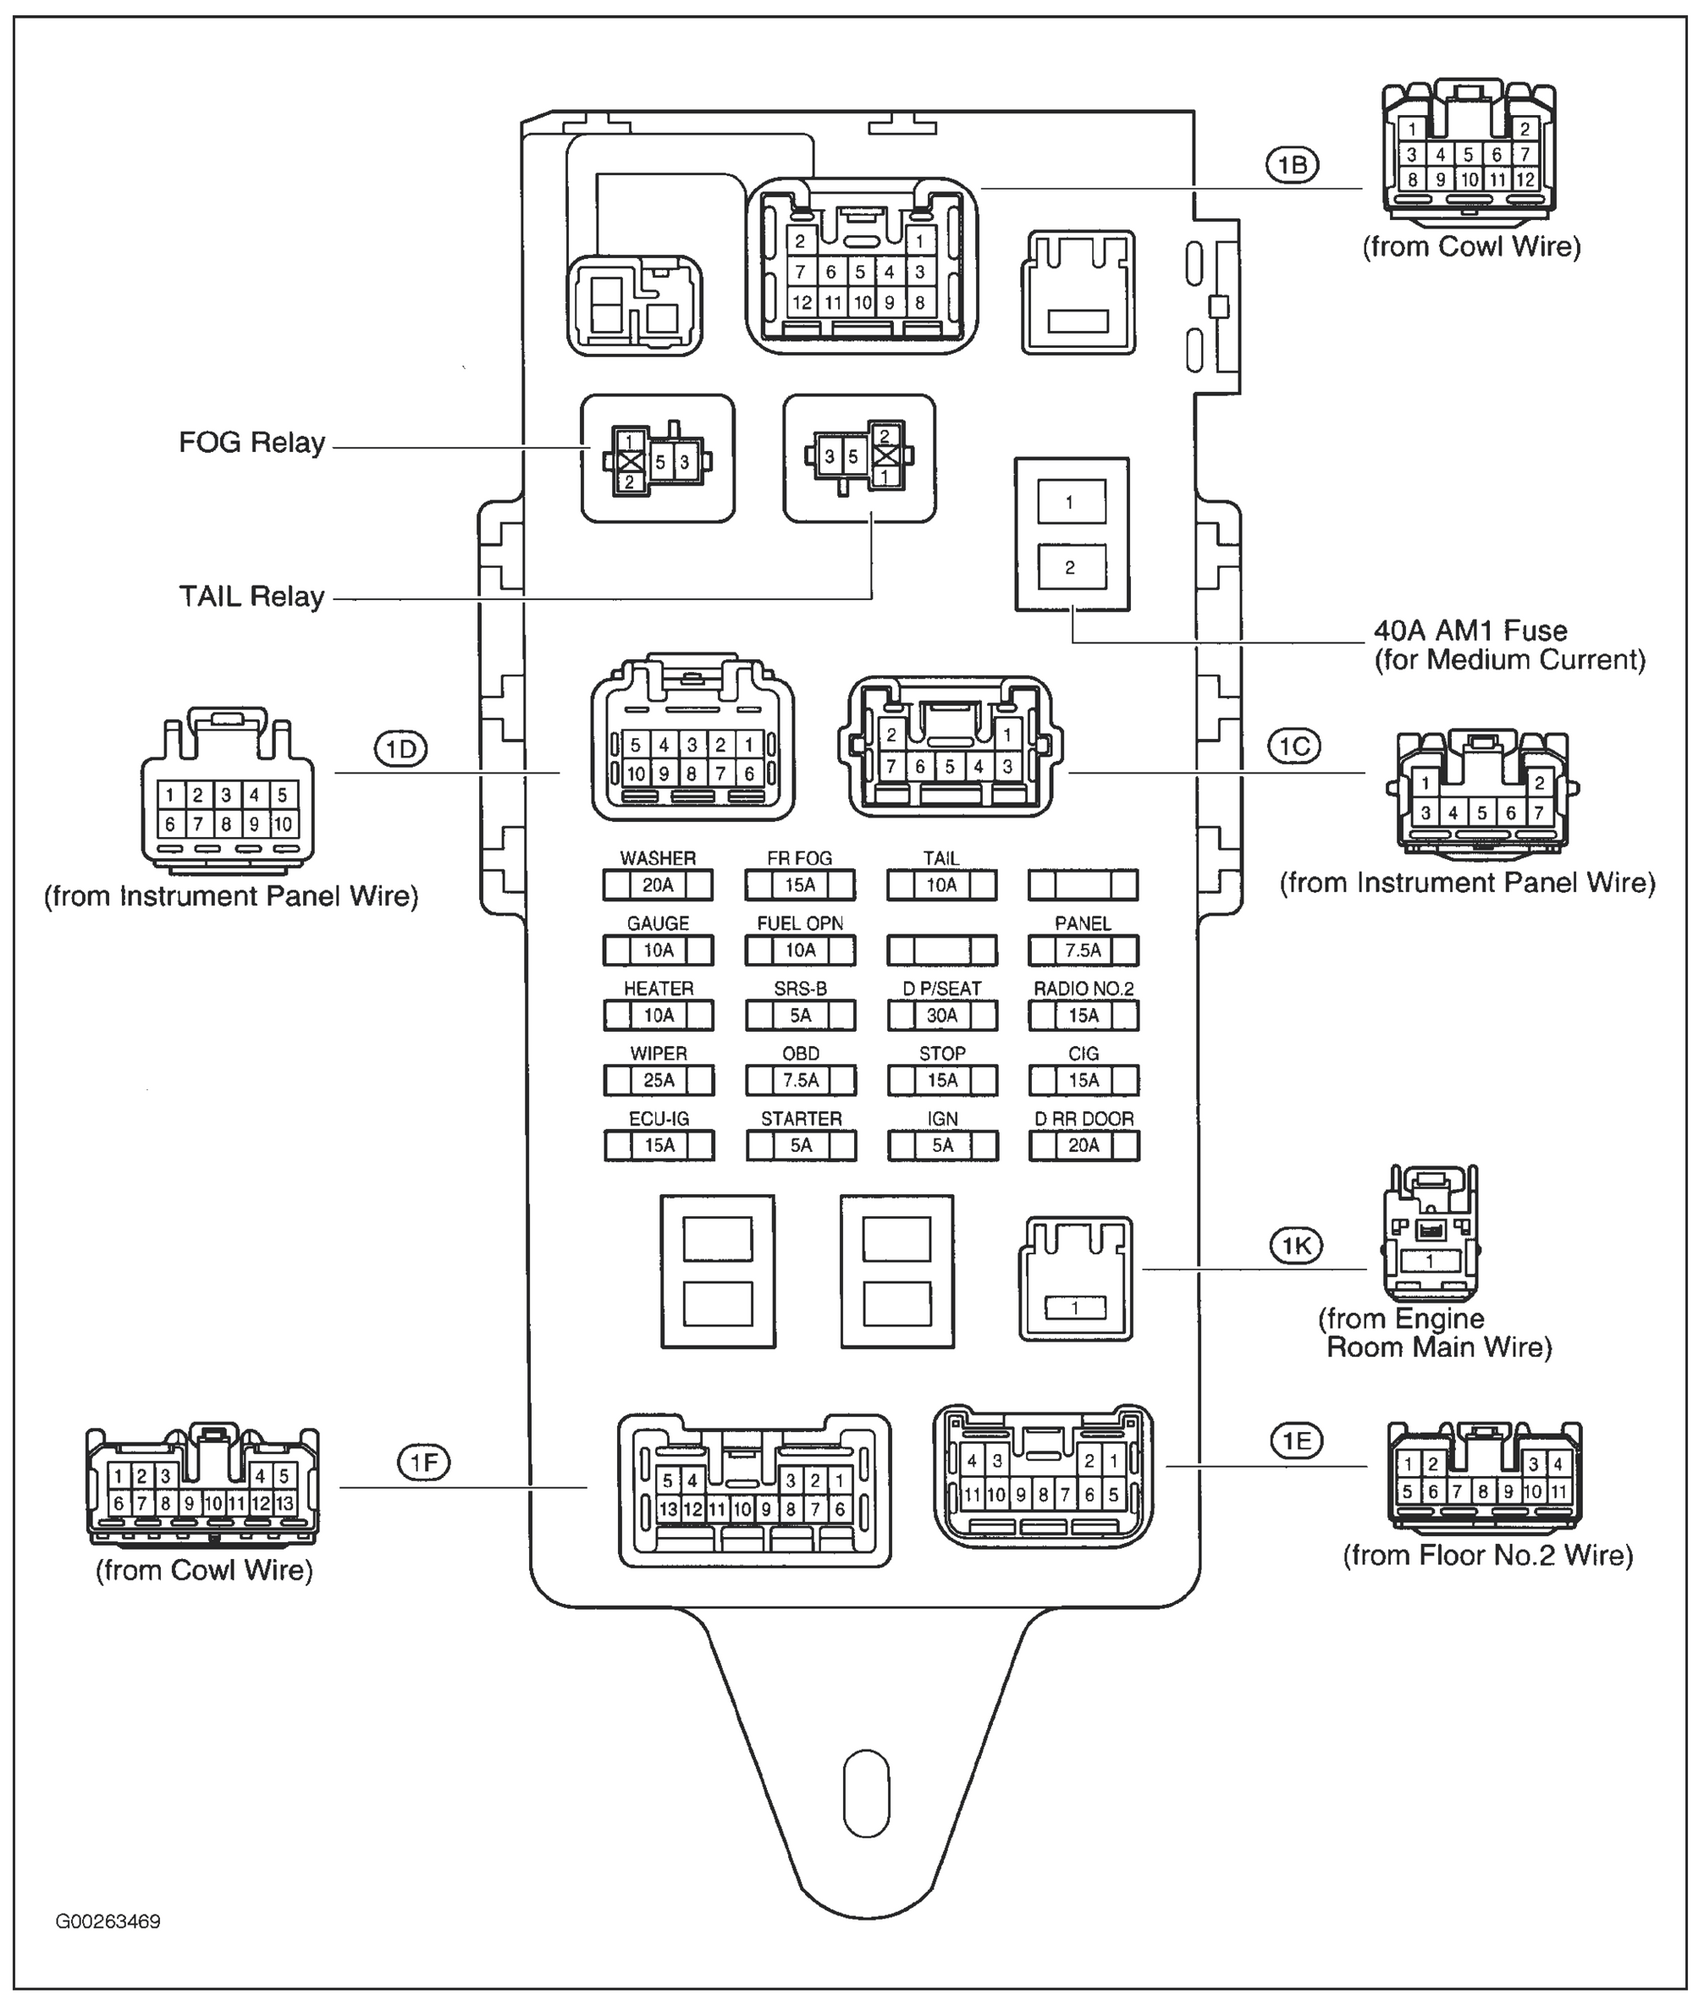 Uconnect Wiring Diagram Rev 2 Worksheet And 2013 Jeep Wrangler Radio 2006 Lexus Gs300 Fuse Box Experts Of U2022 Rh Evilcloud Co Uk Dodge Caliber Starter